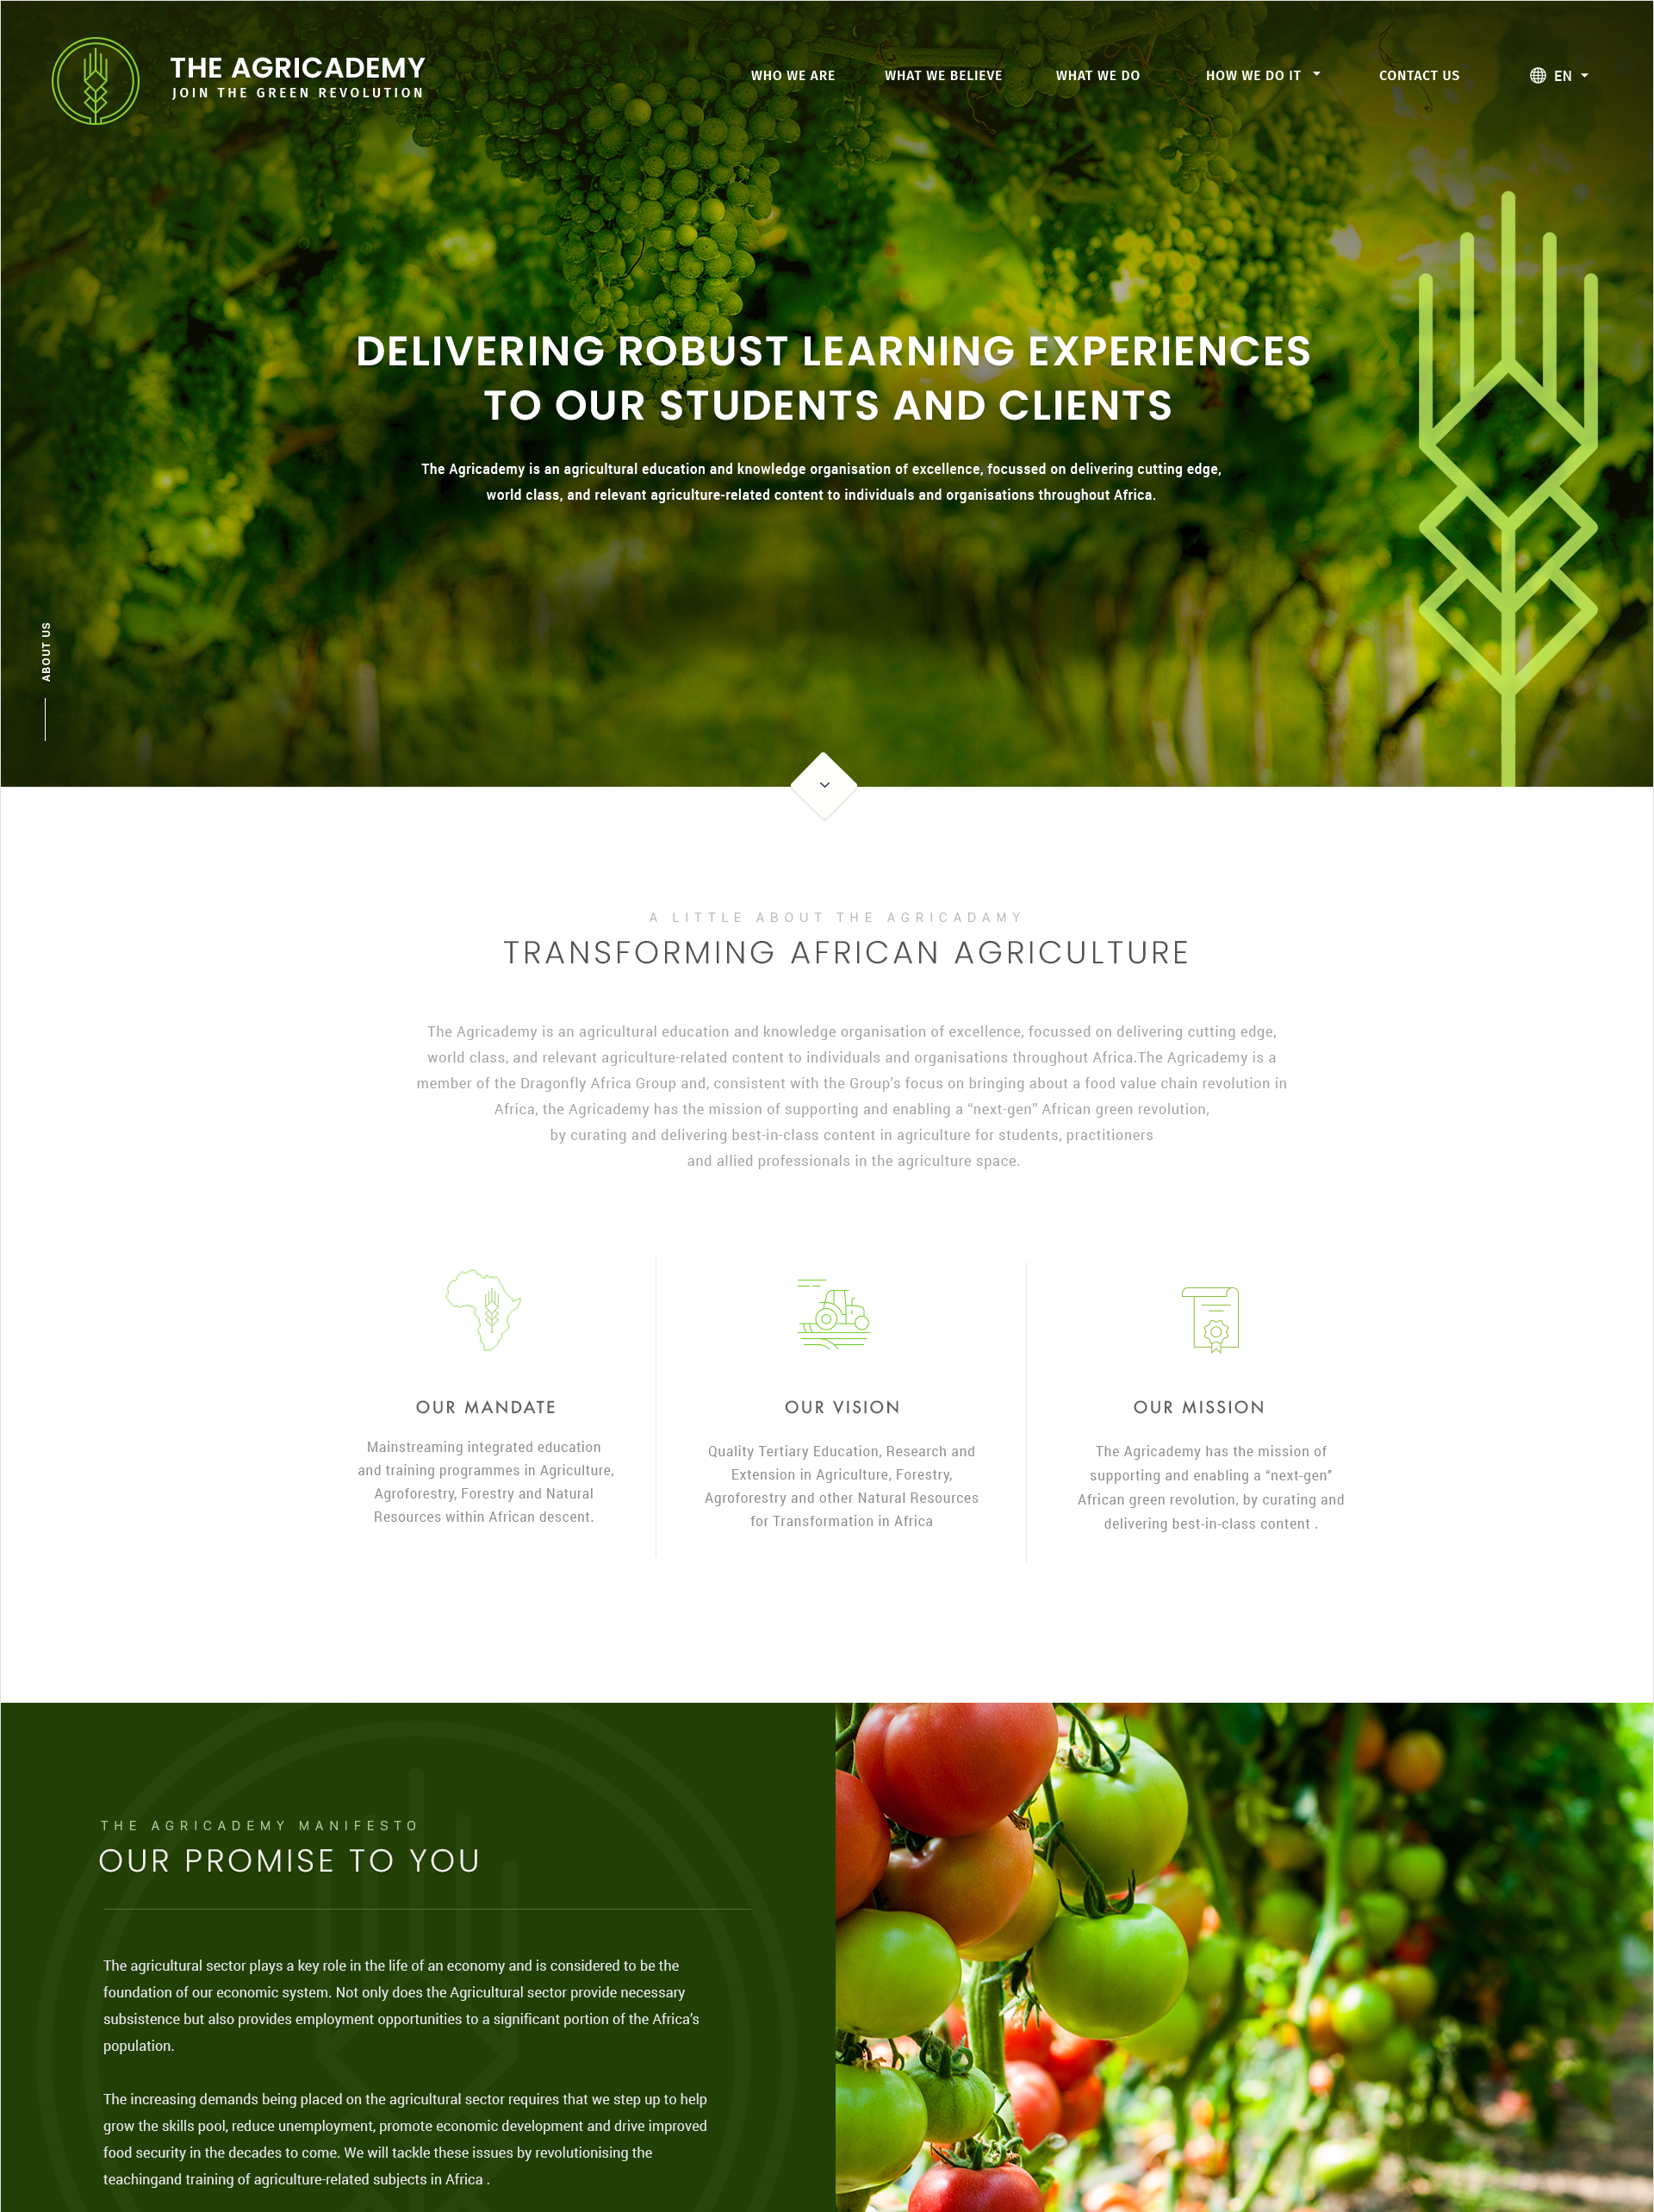 Clean and modern web design